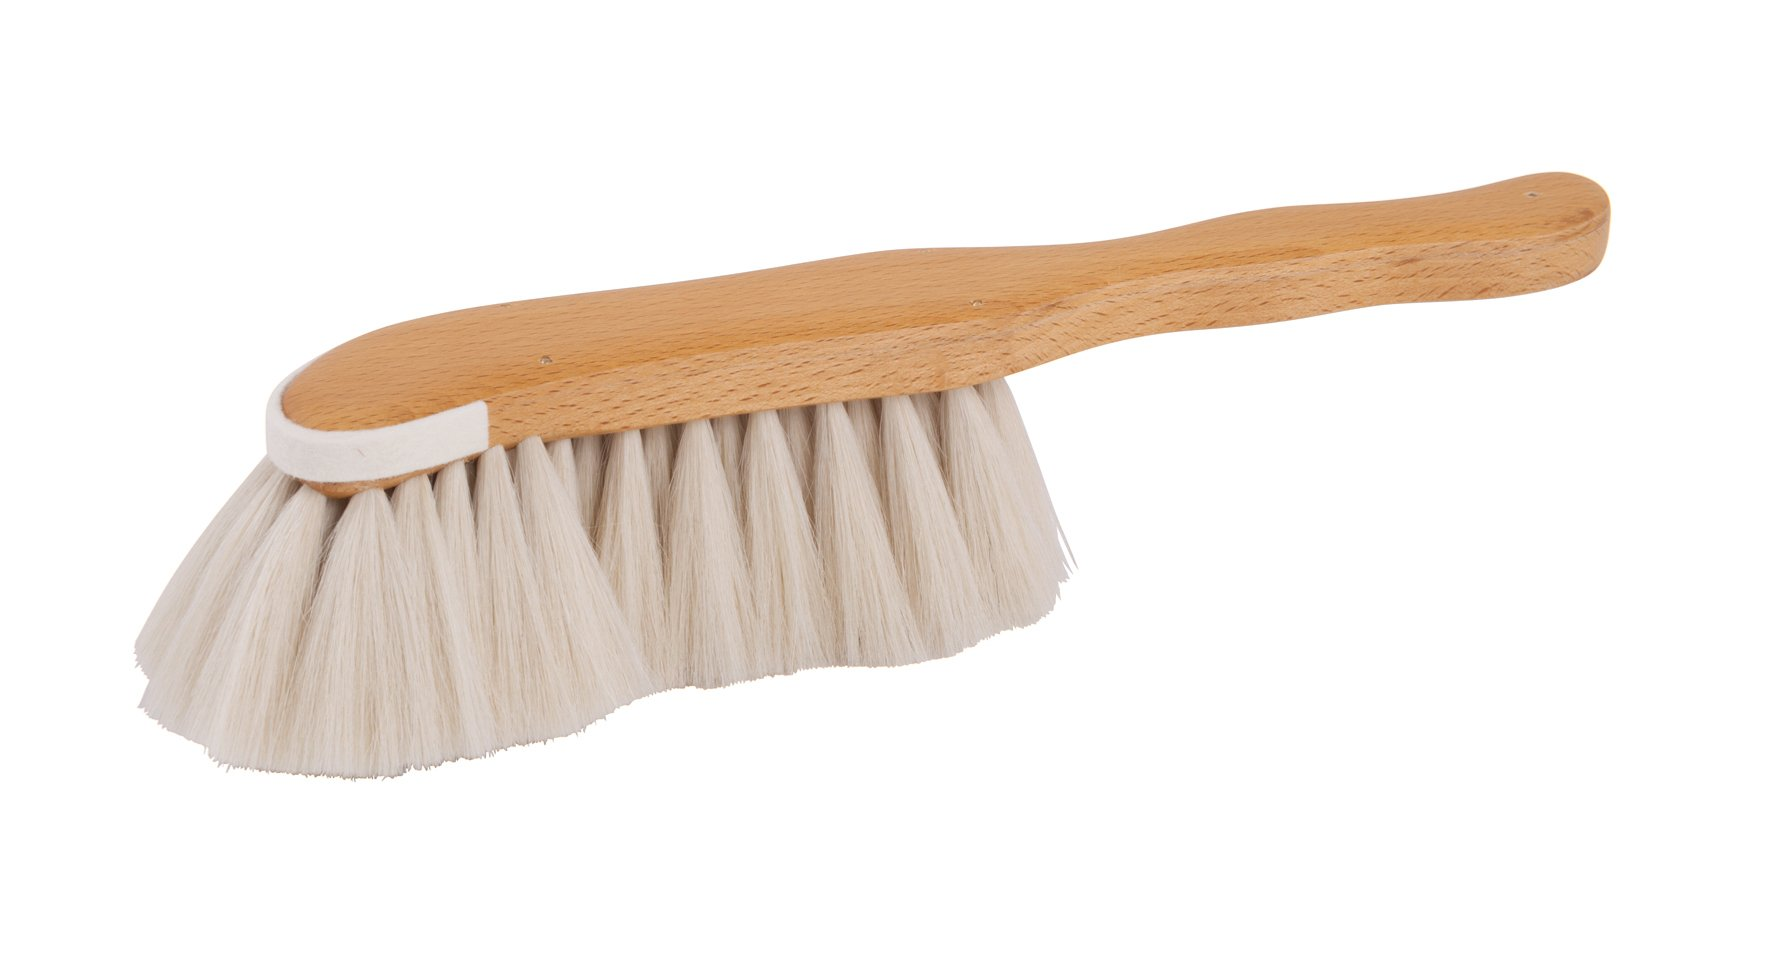 Redecker Goat Hair Dust Brush with Waxed Beechwood Handle, Large, 11-3/8-Inches